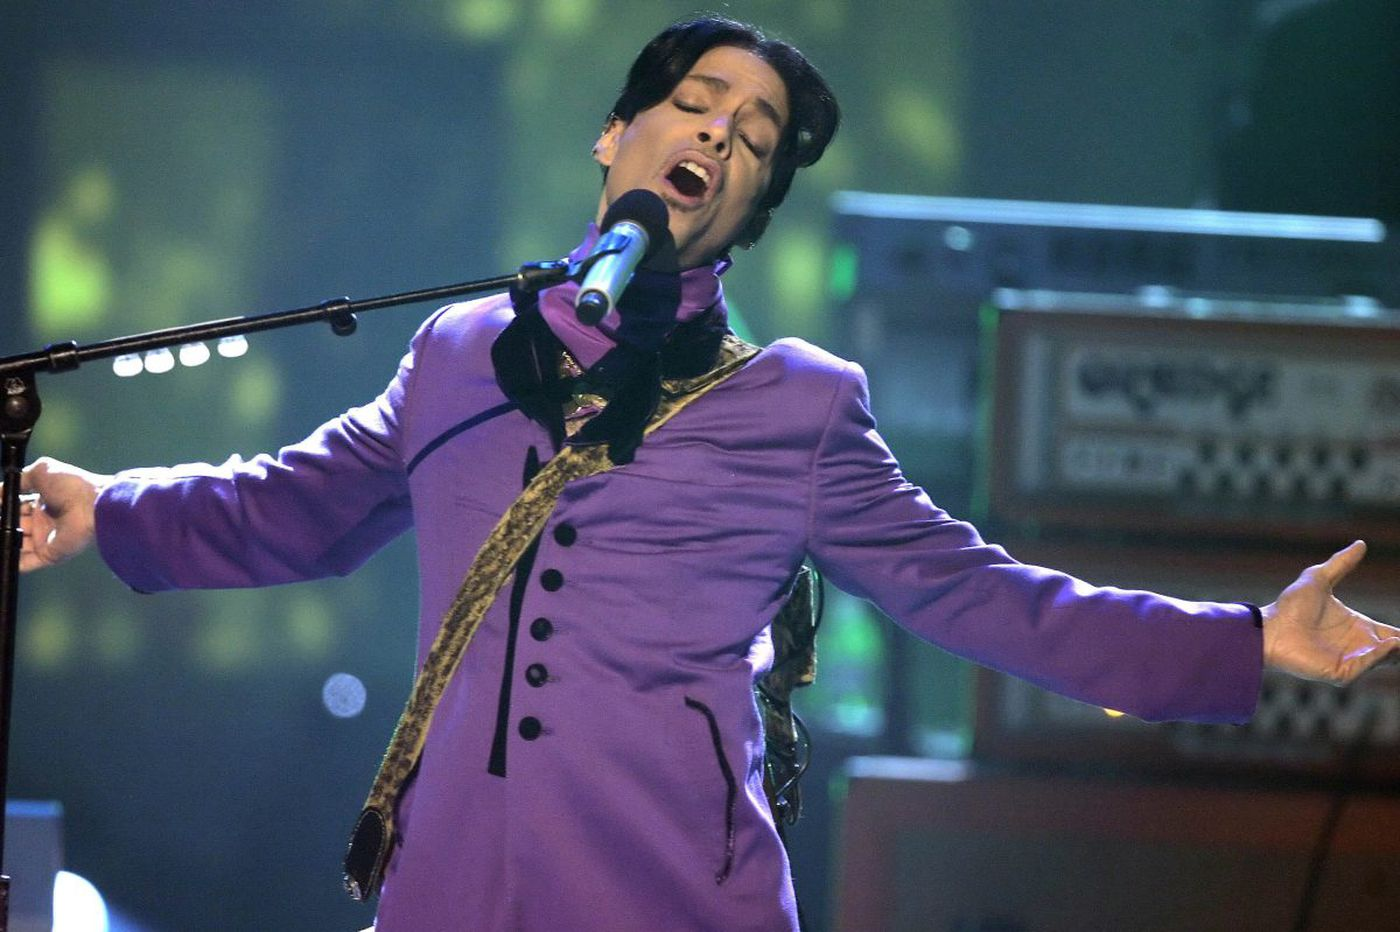 Pantone's 2018 color of the year a nod to creativity, originality, and Prince | Elizabeth Wellington